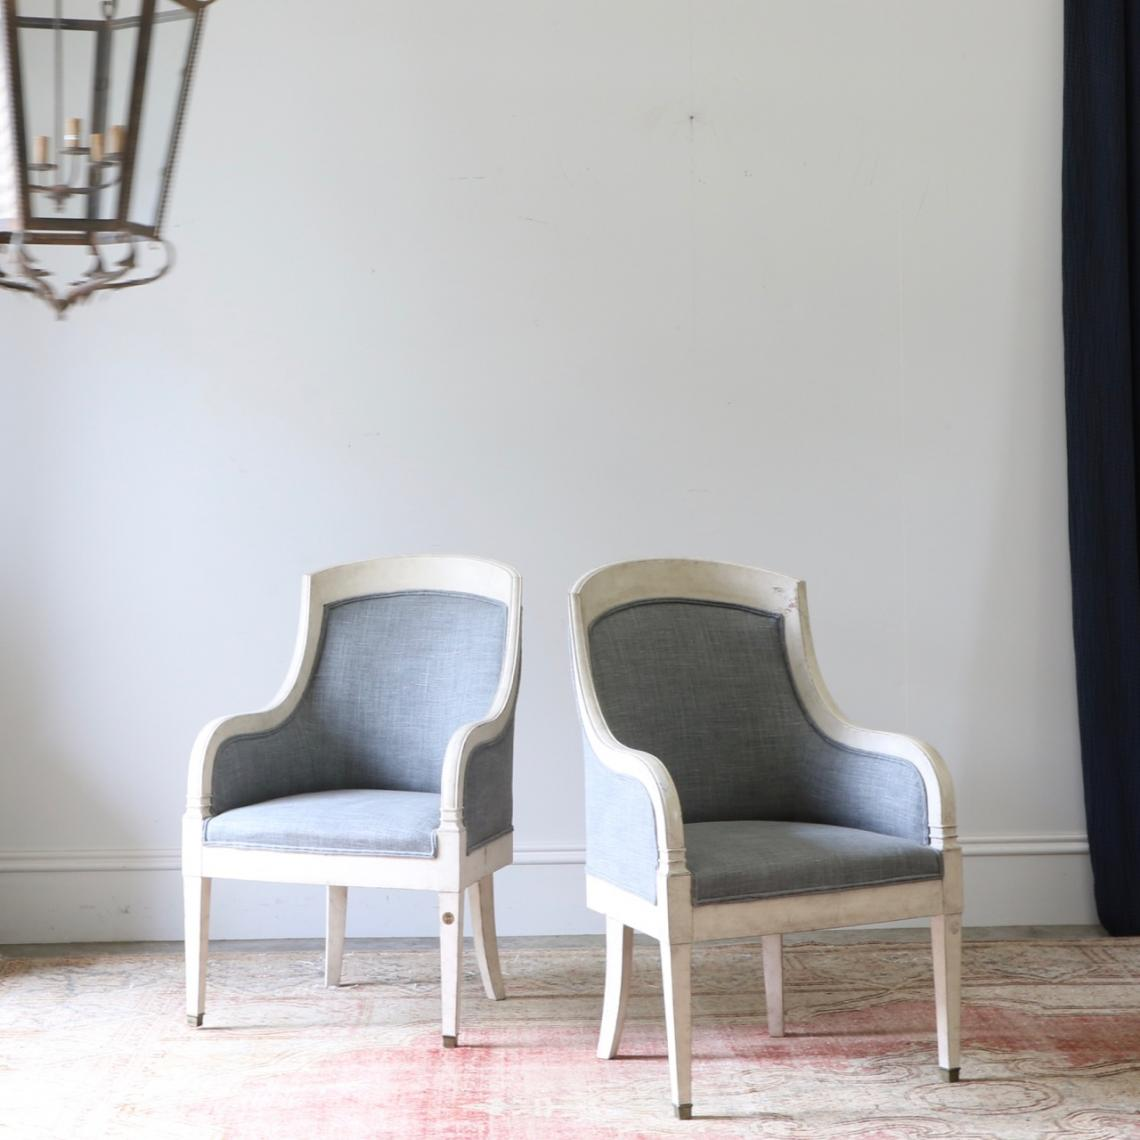 116-88 - Pair of Gustavian Chairs